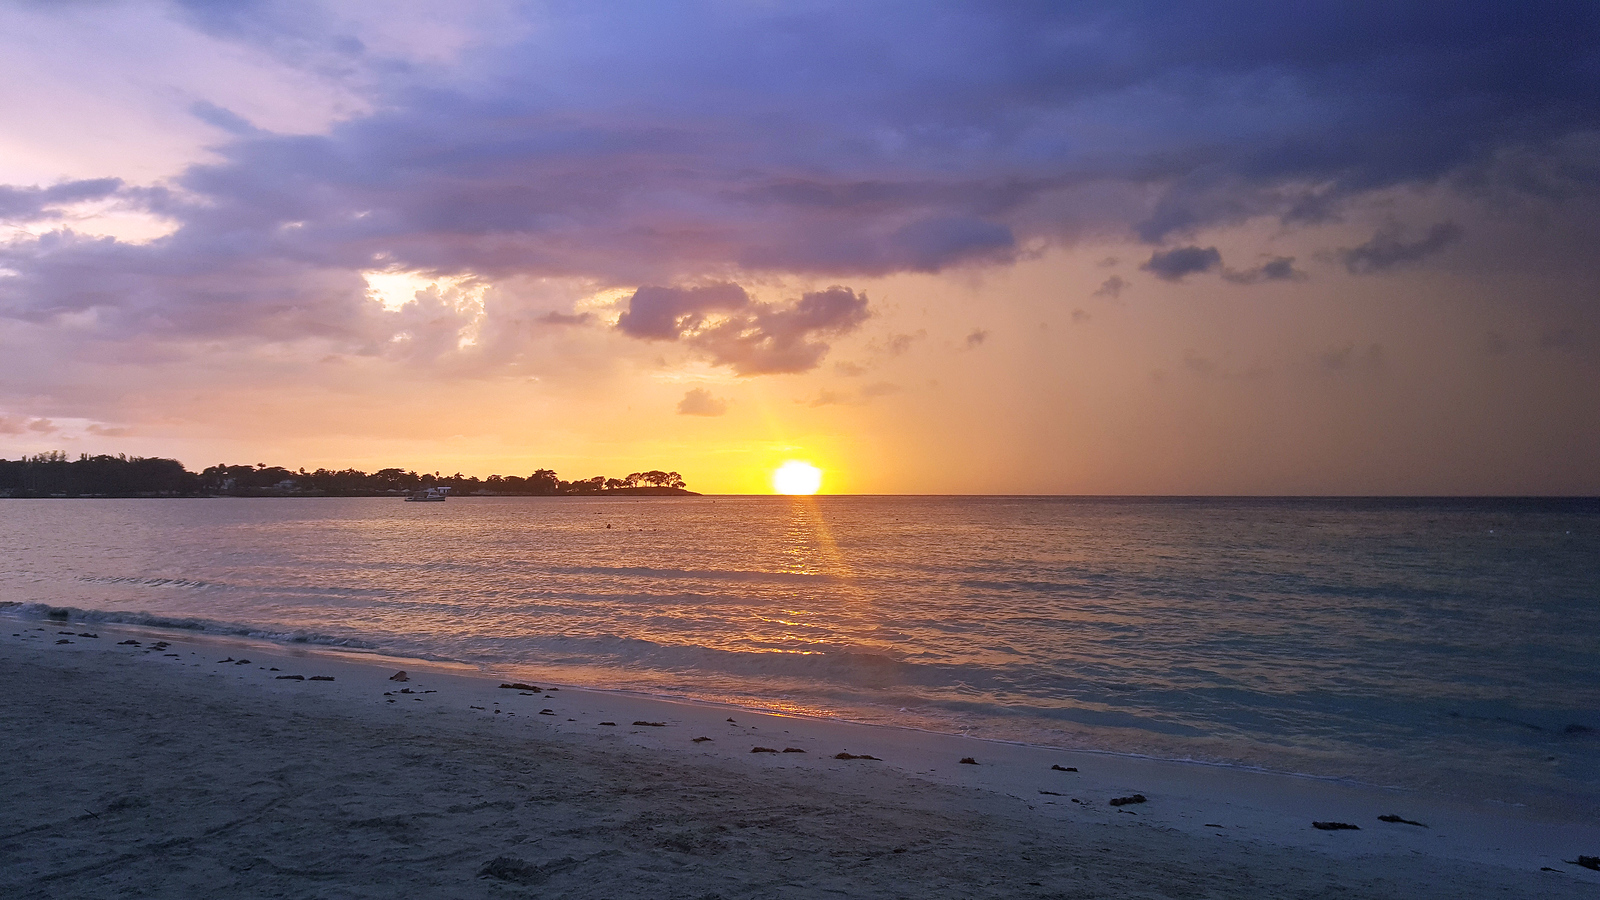 Sunset at Bloody Bay Beach in Negril Jamaica